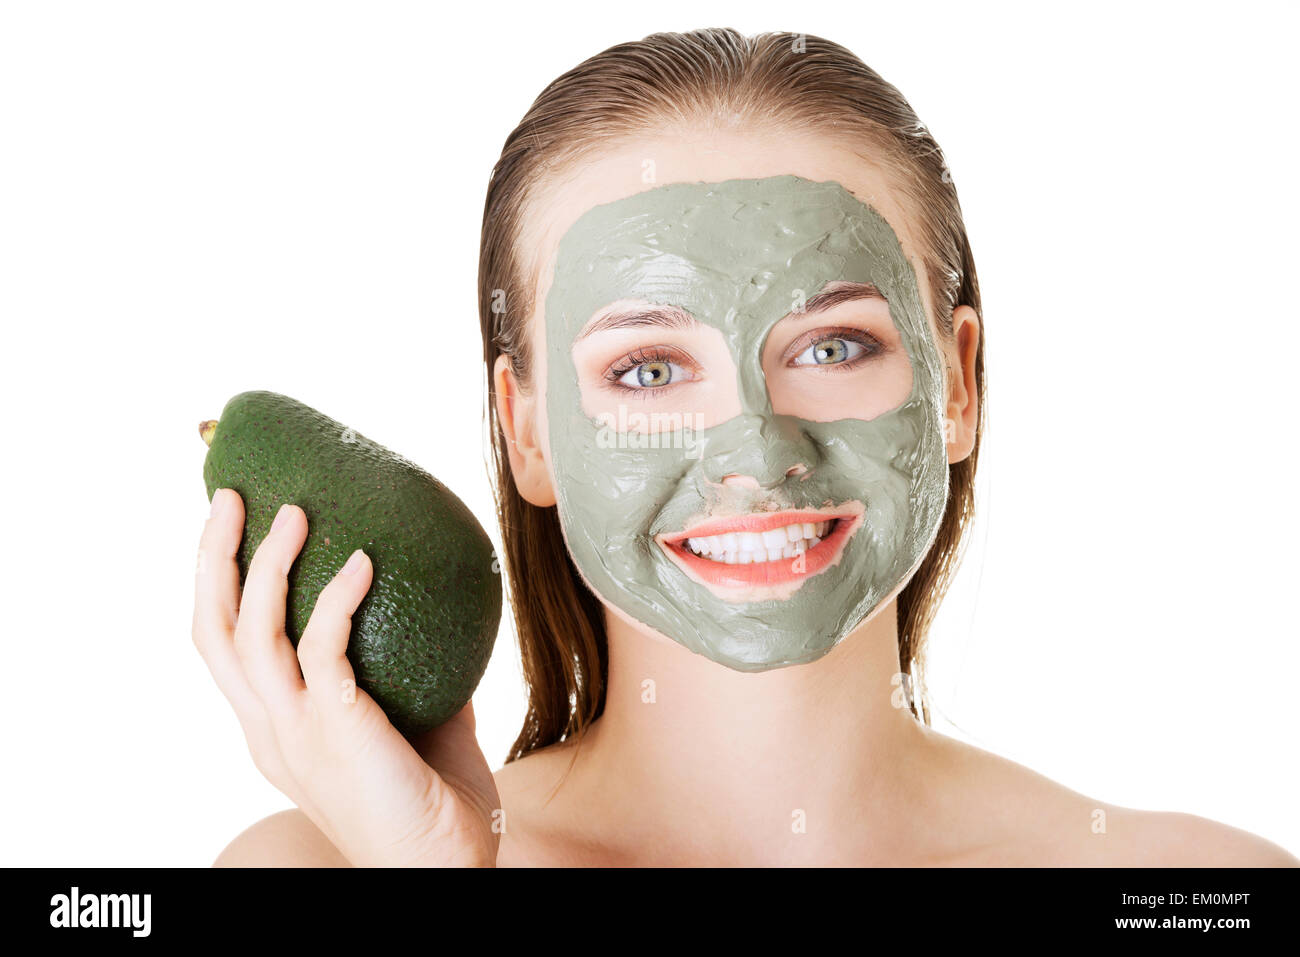 Seldom.. clay facial mask